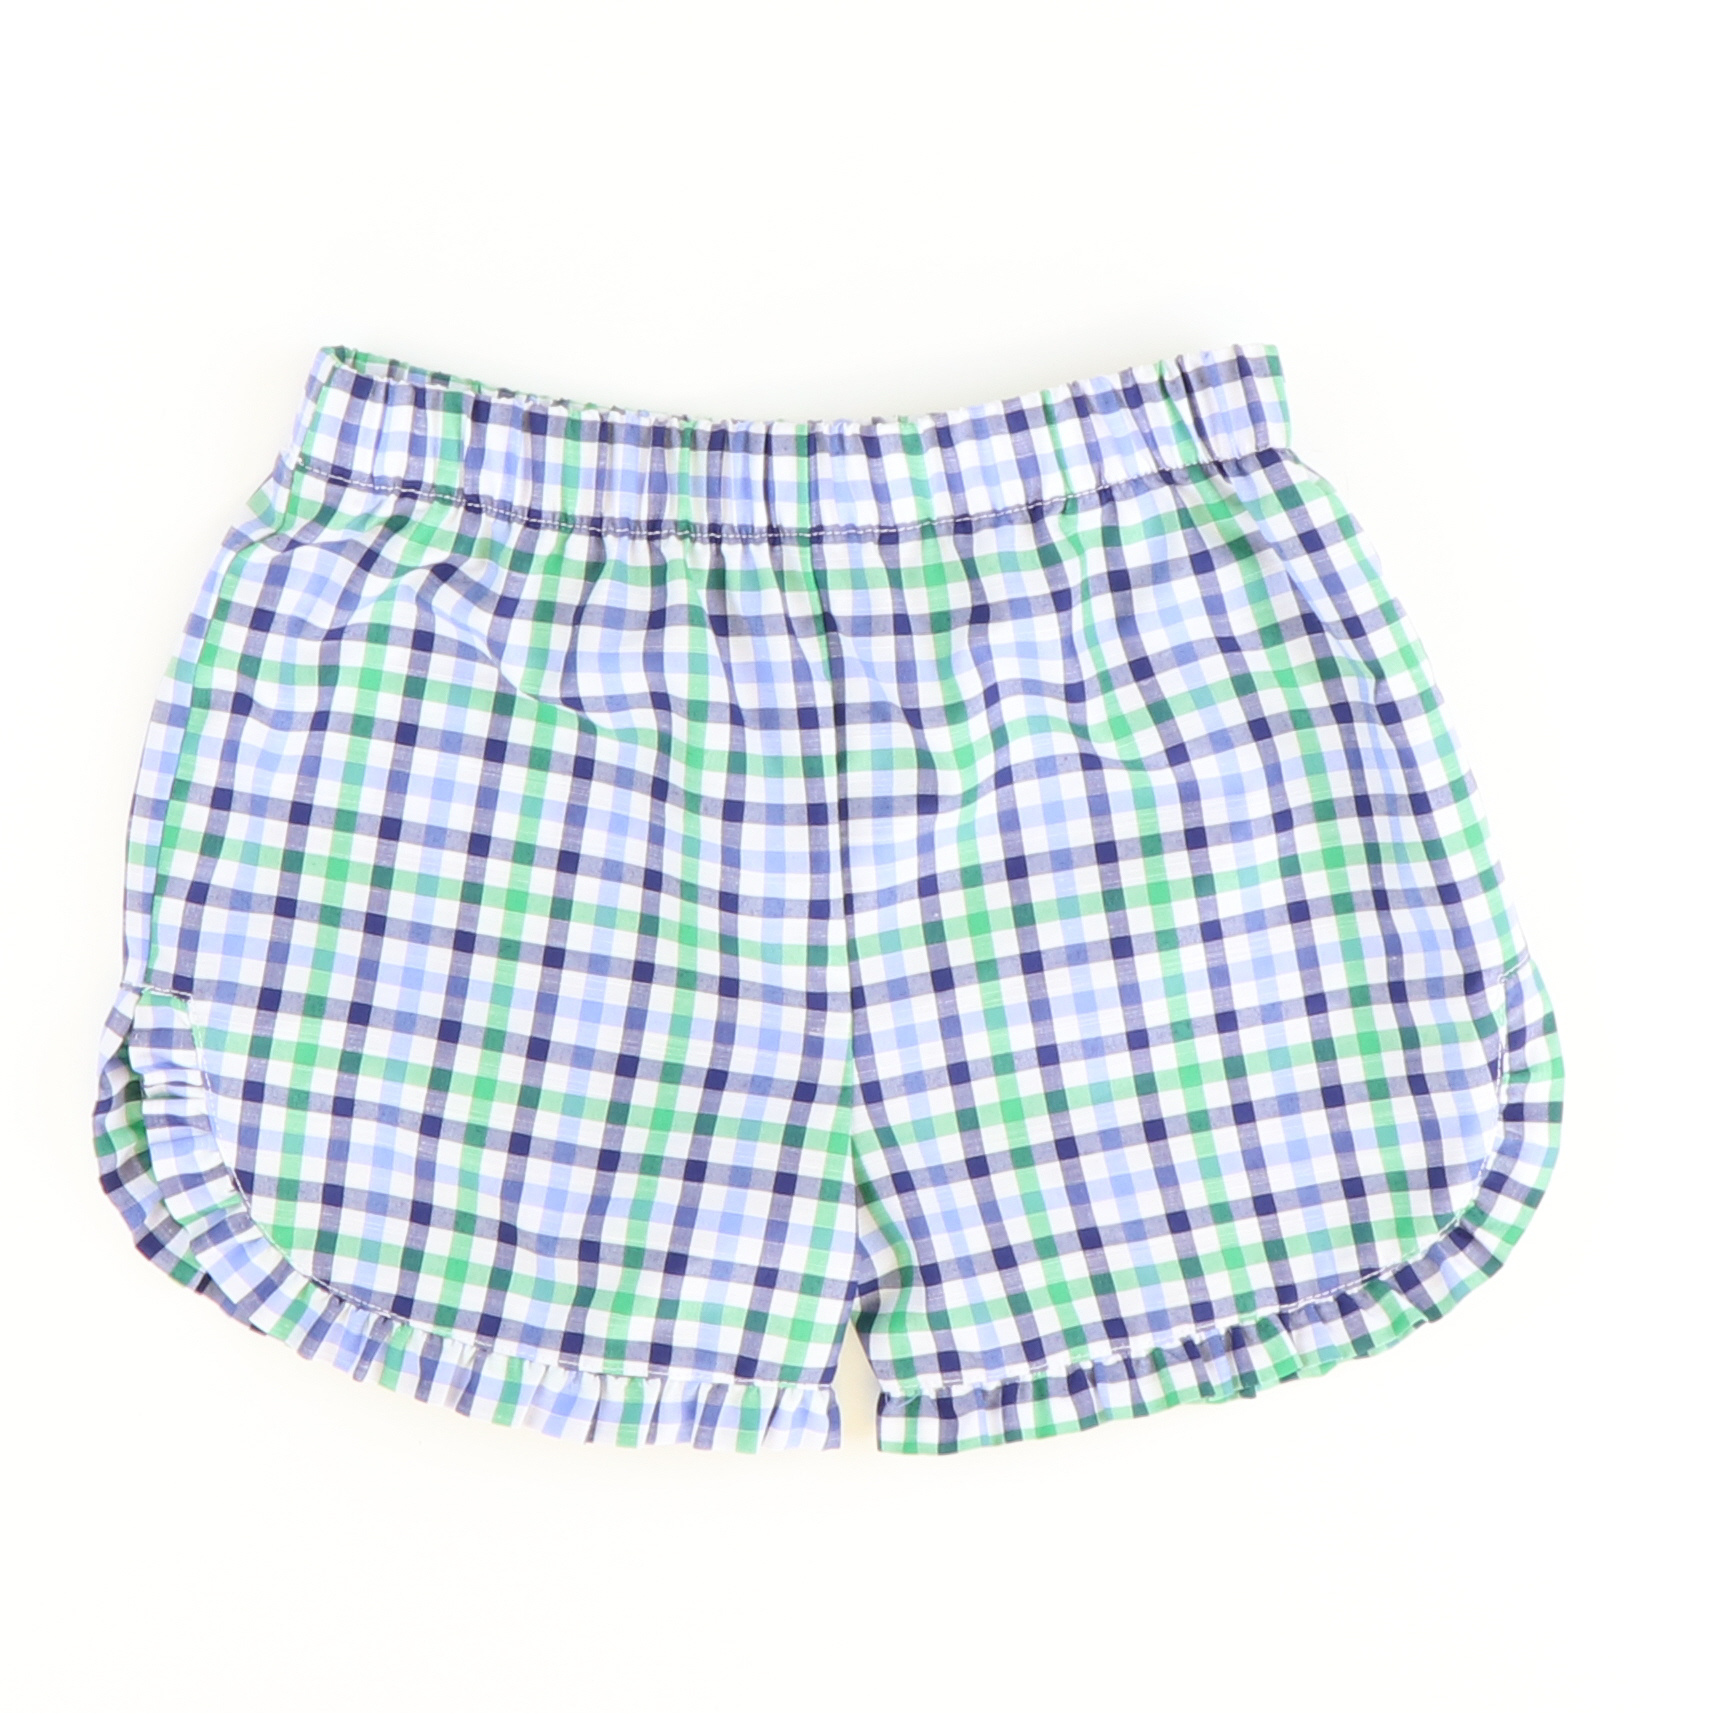 Ruffle Shorts - Navy Blue & Green Plaid - Stellybelly ?id=28114125389903